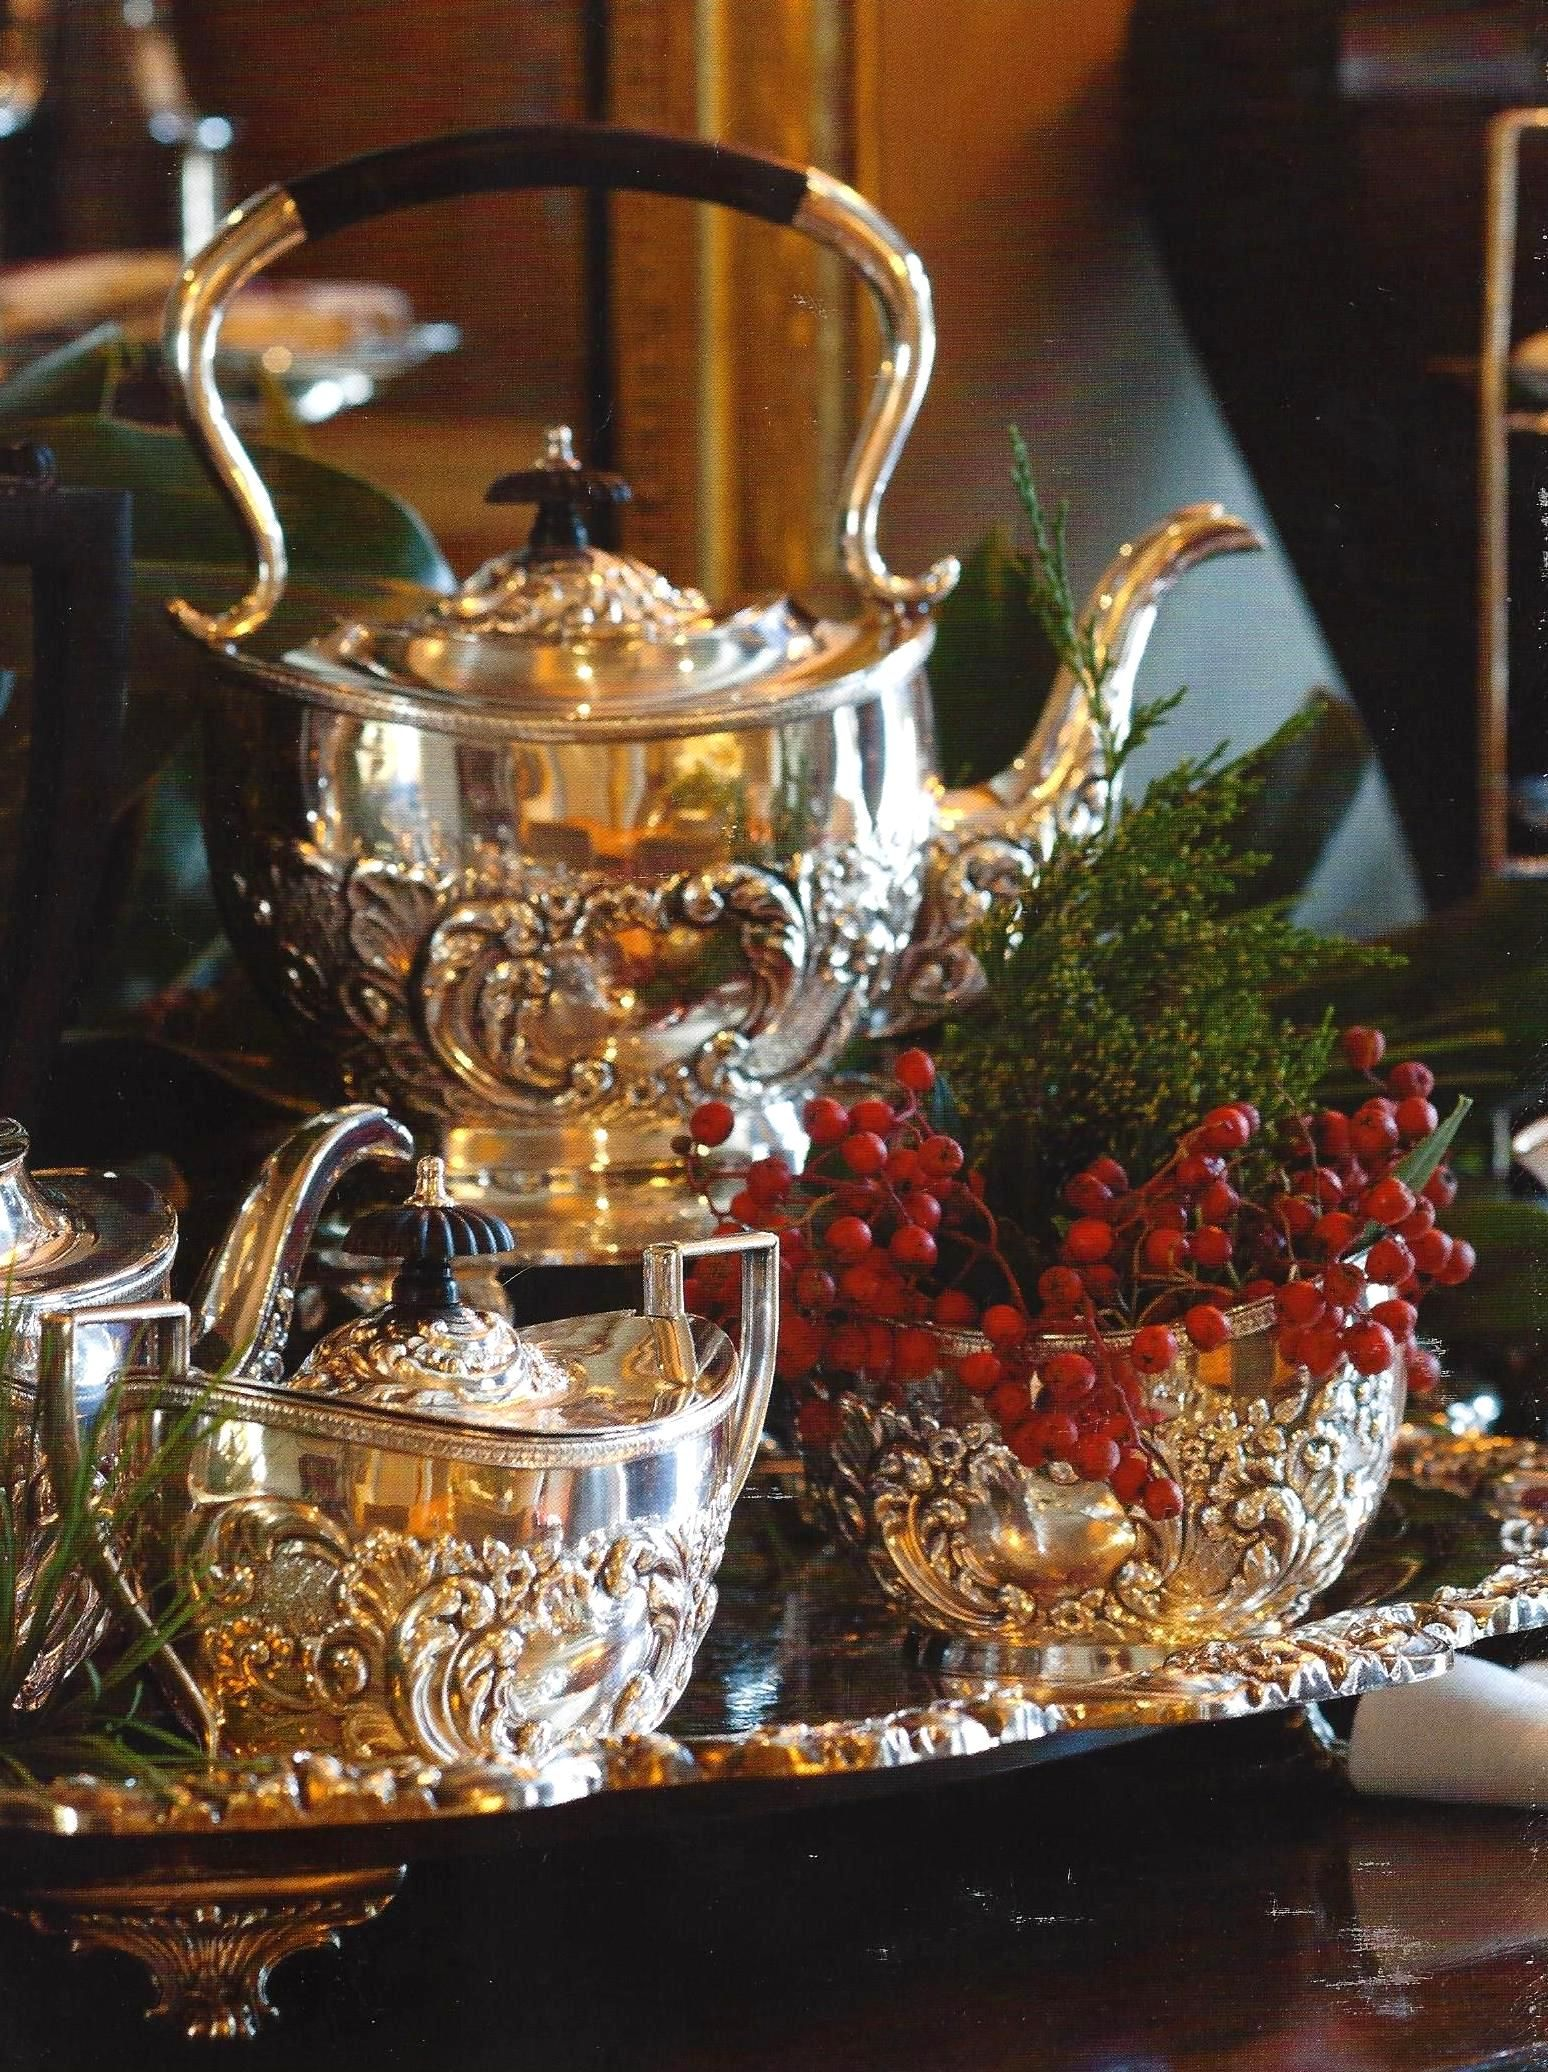 Silver tea service with Christmas greens and berries (From